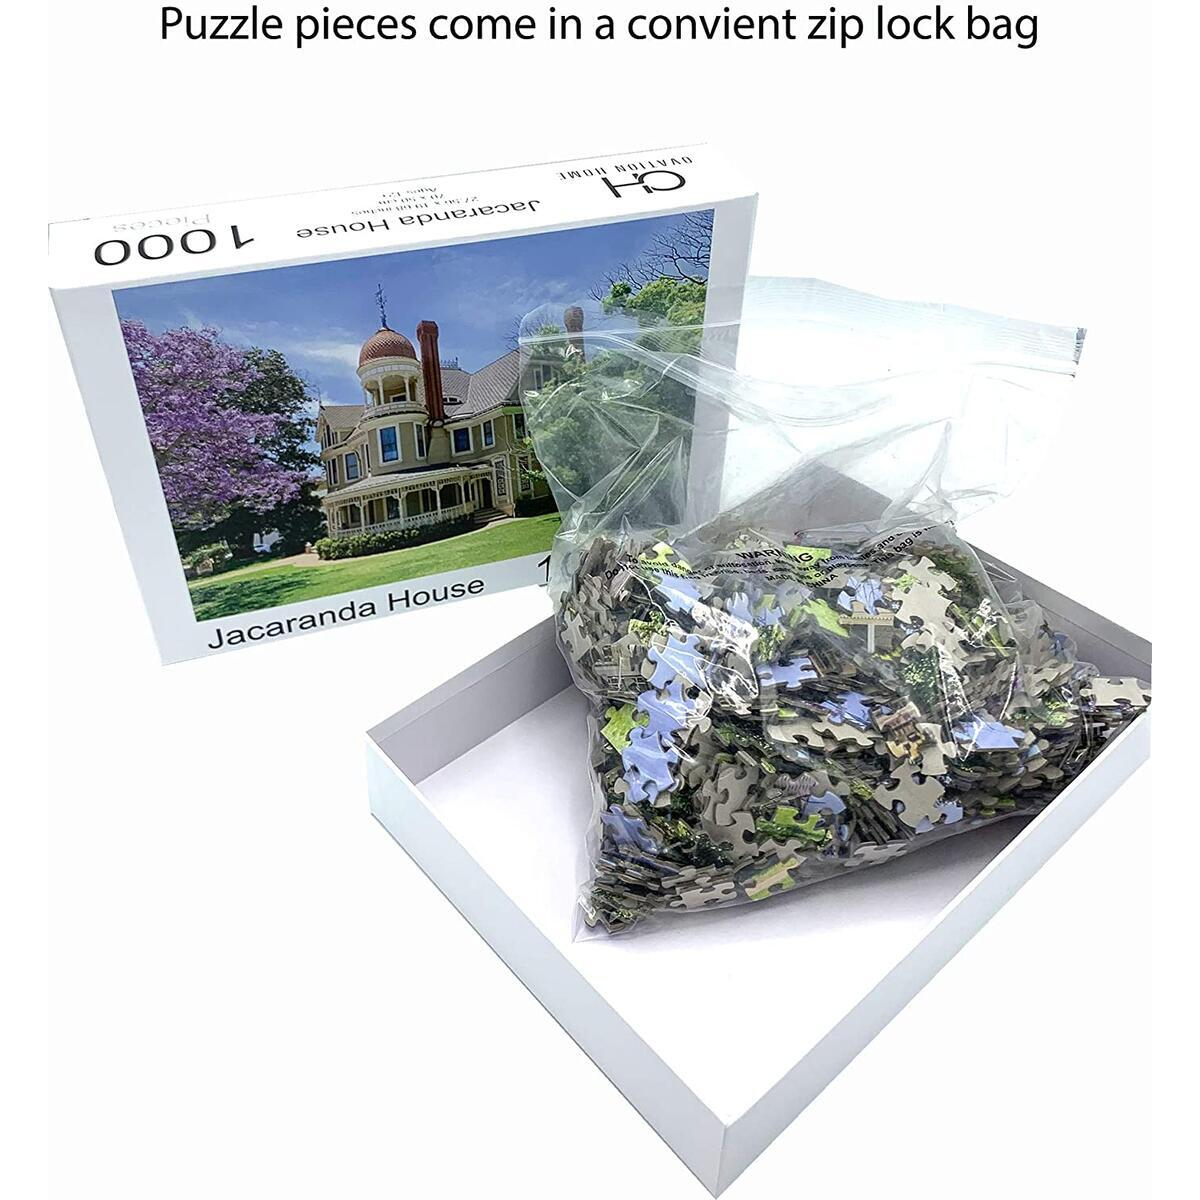 1000 Piece Jigsaw Puzzle - Jacaranda House - 28 x 20 Inch x 2mm Thick Puzzle for Adults and Children 12 and Older. Entertaining and Challenging Puzzle for Hours of Family Fun.